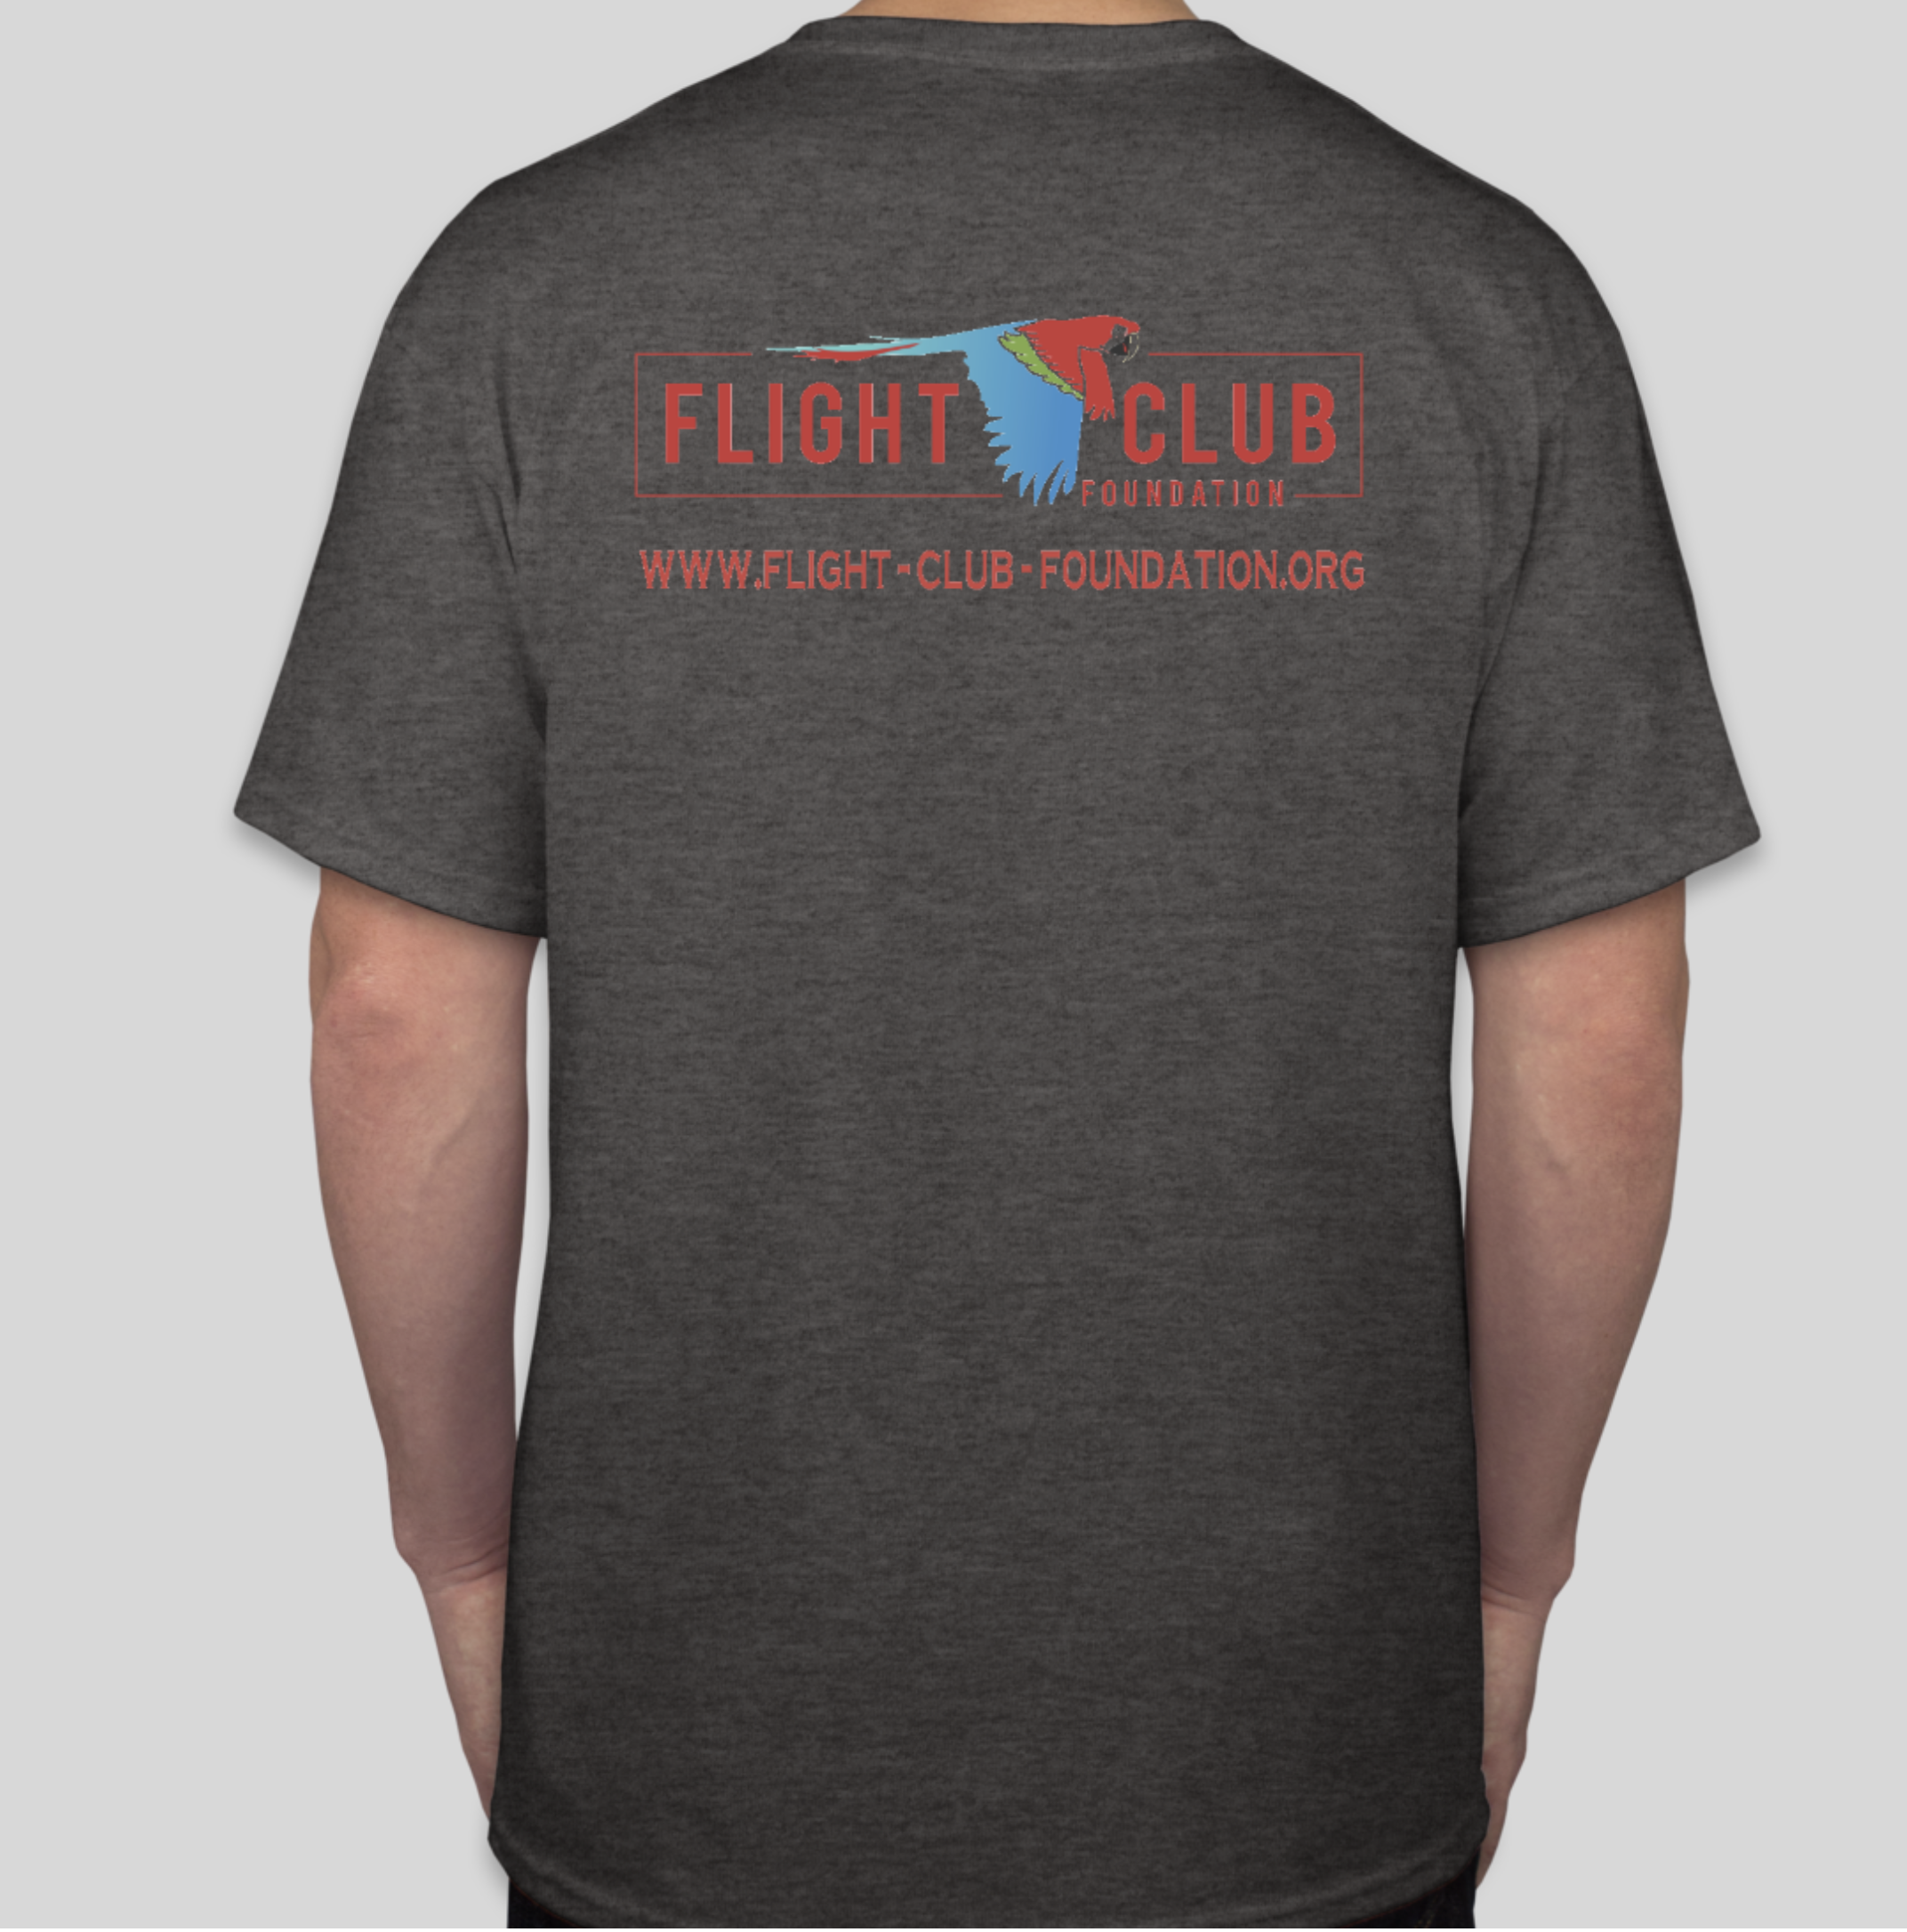 2018 Commemorative Shirt